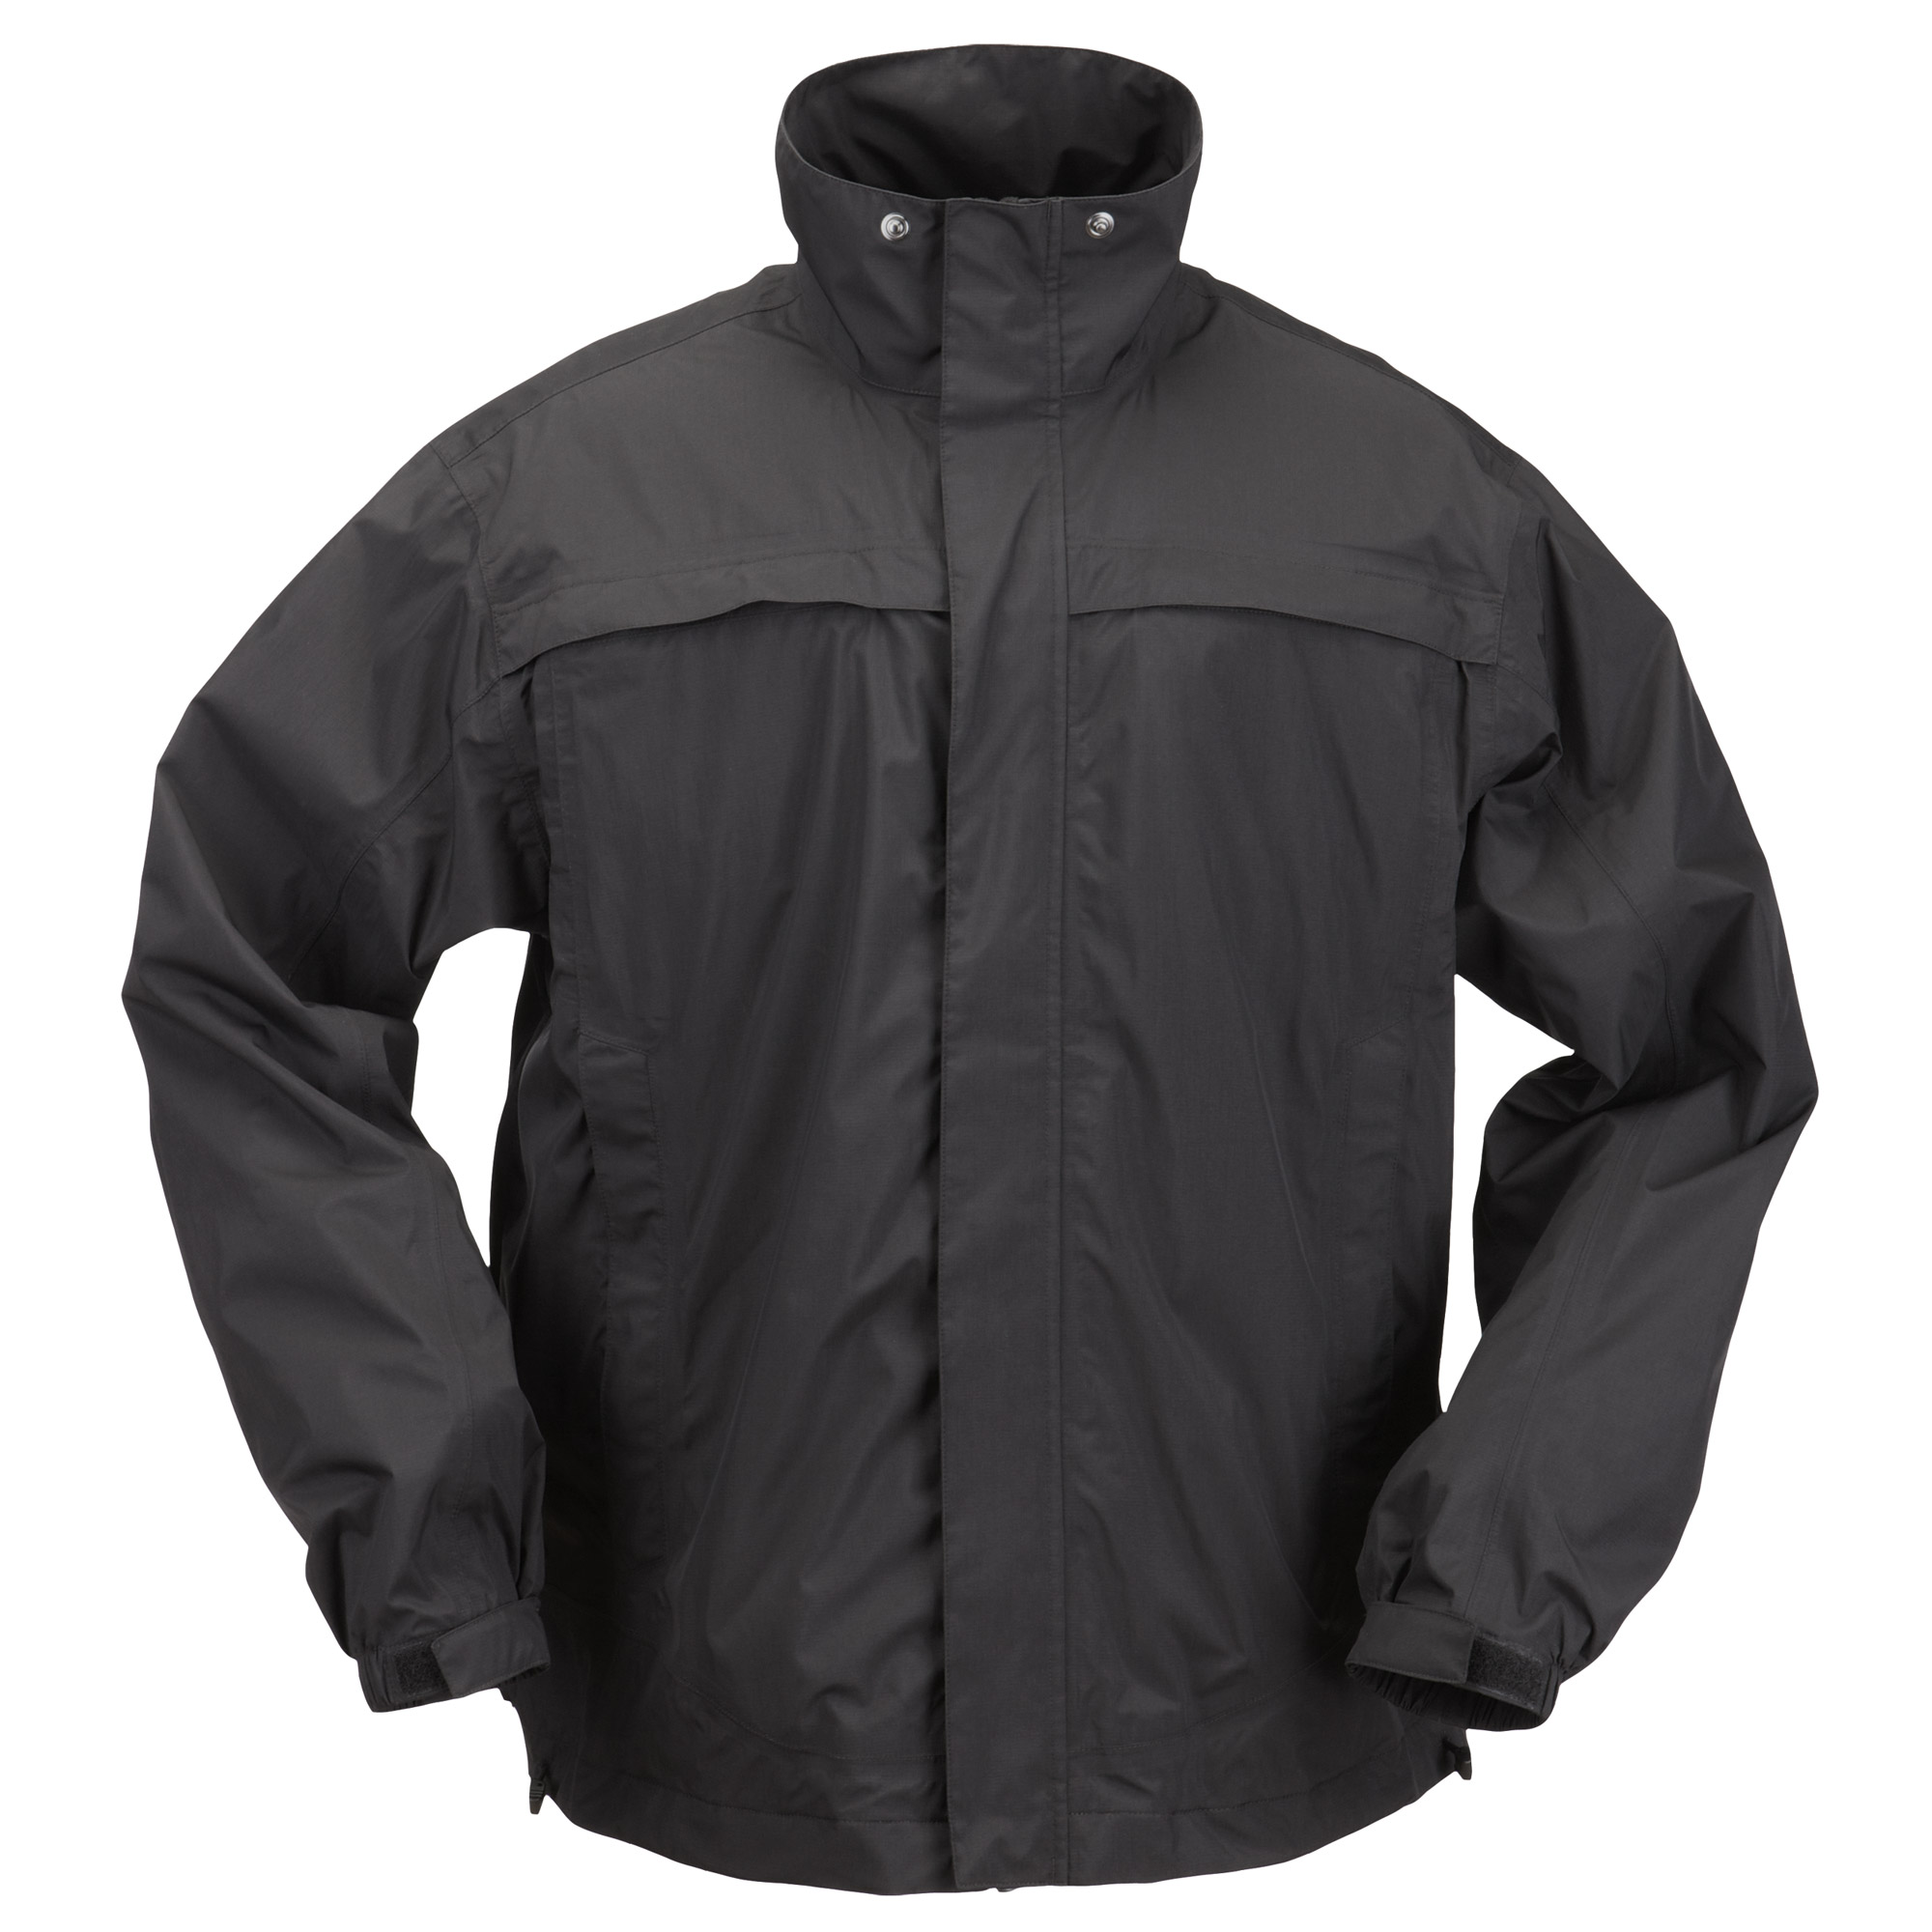 5.11 Tactical Men's TAC DRY Rain Shell (Black)